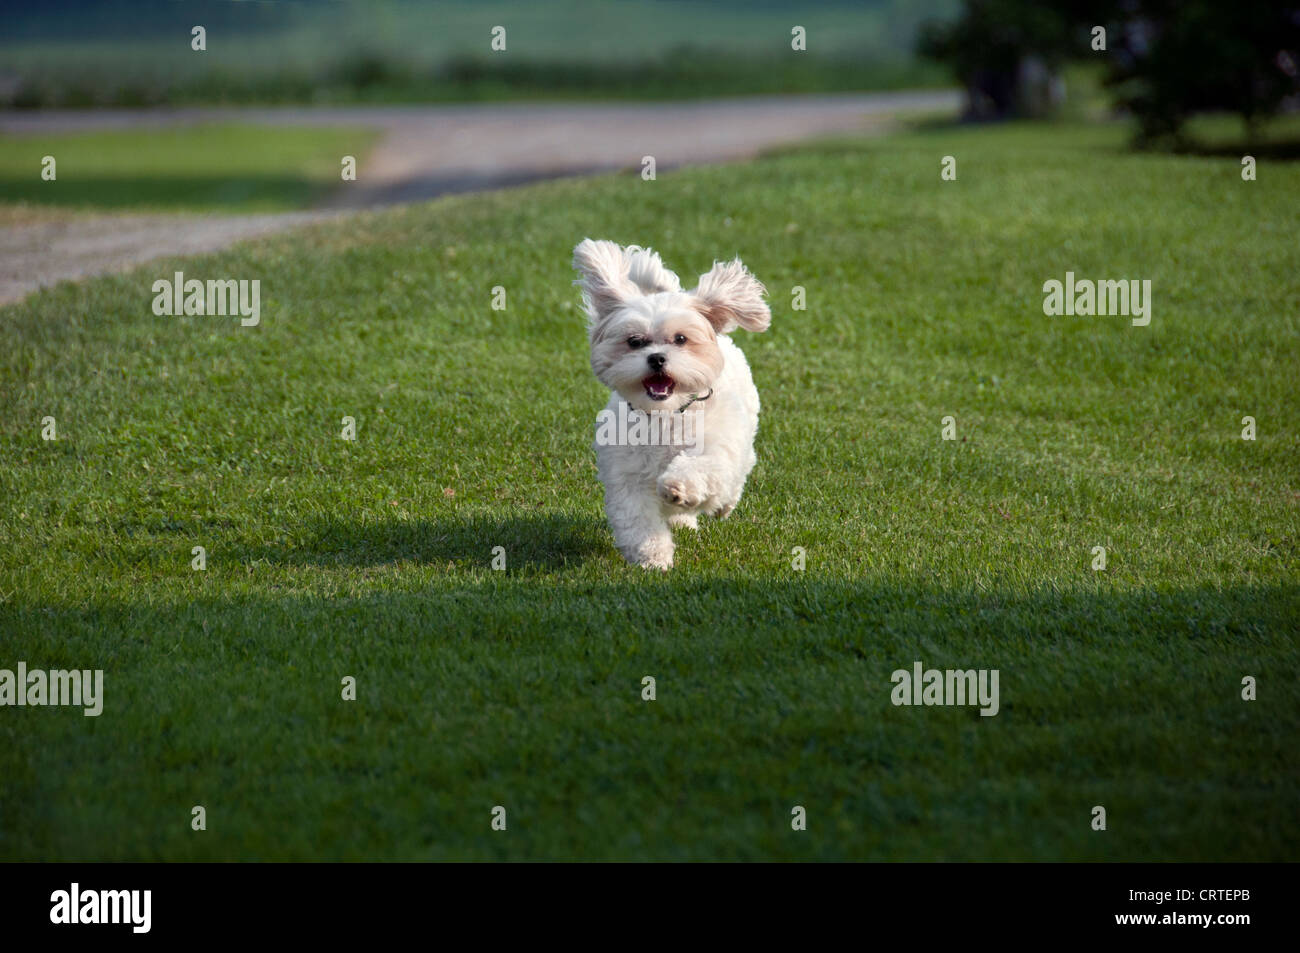 a happy puppy dog running - Stock Image